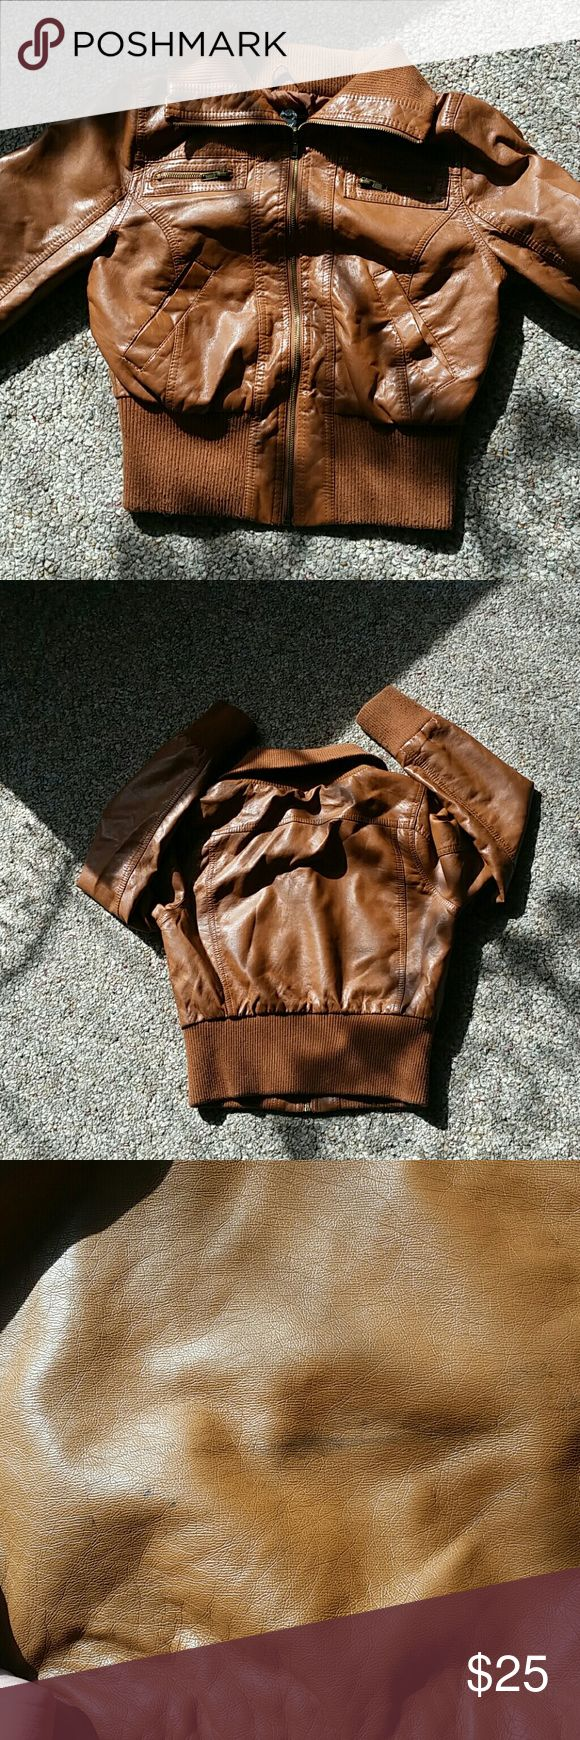 Brown leather jacket Brown leather jacket from ambiance. Size medium. Black line on the back of jacket near the bottom very unnoticable Ambiance Apparel Jackets & Coats